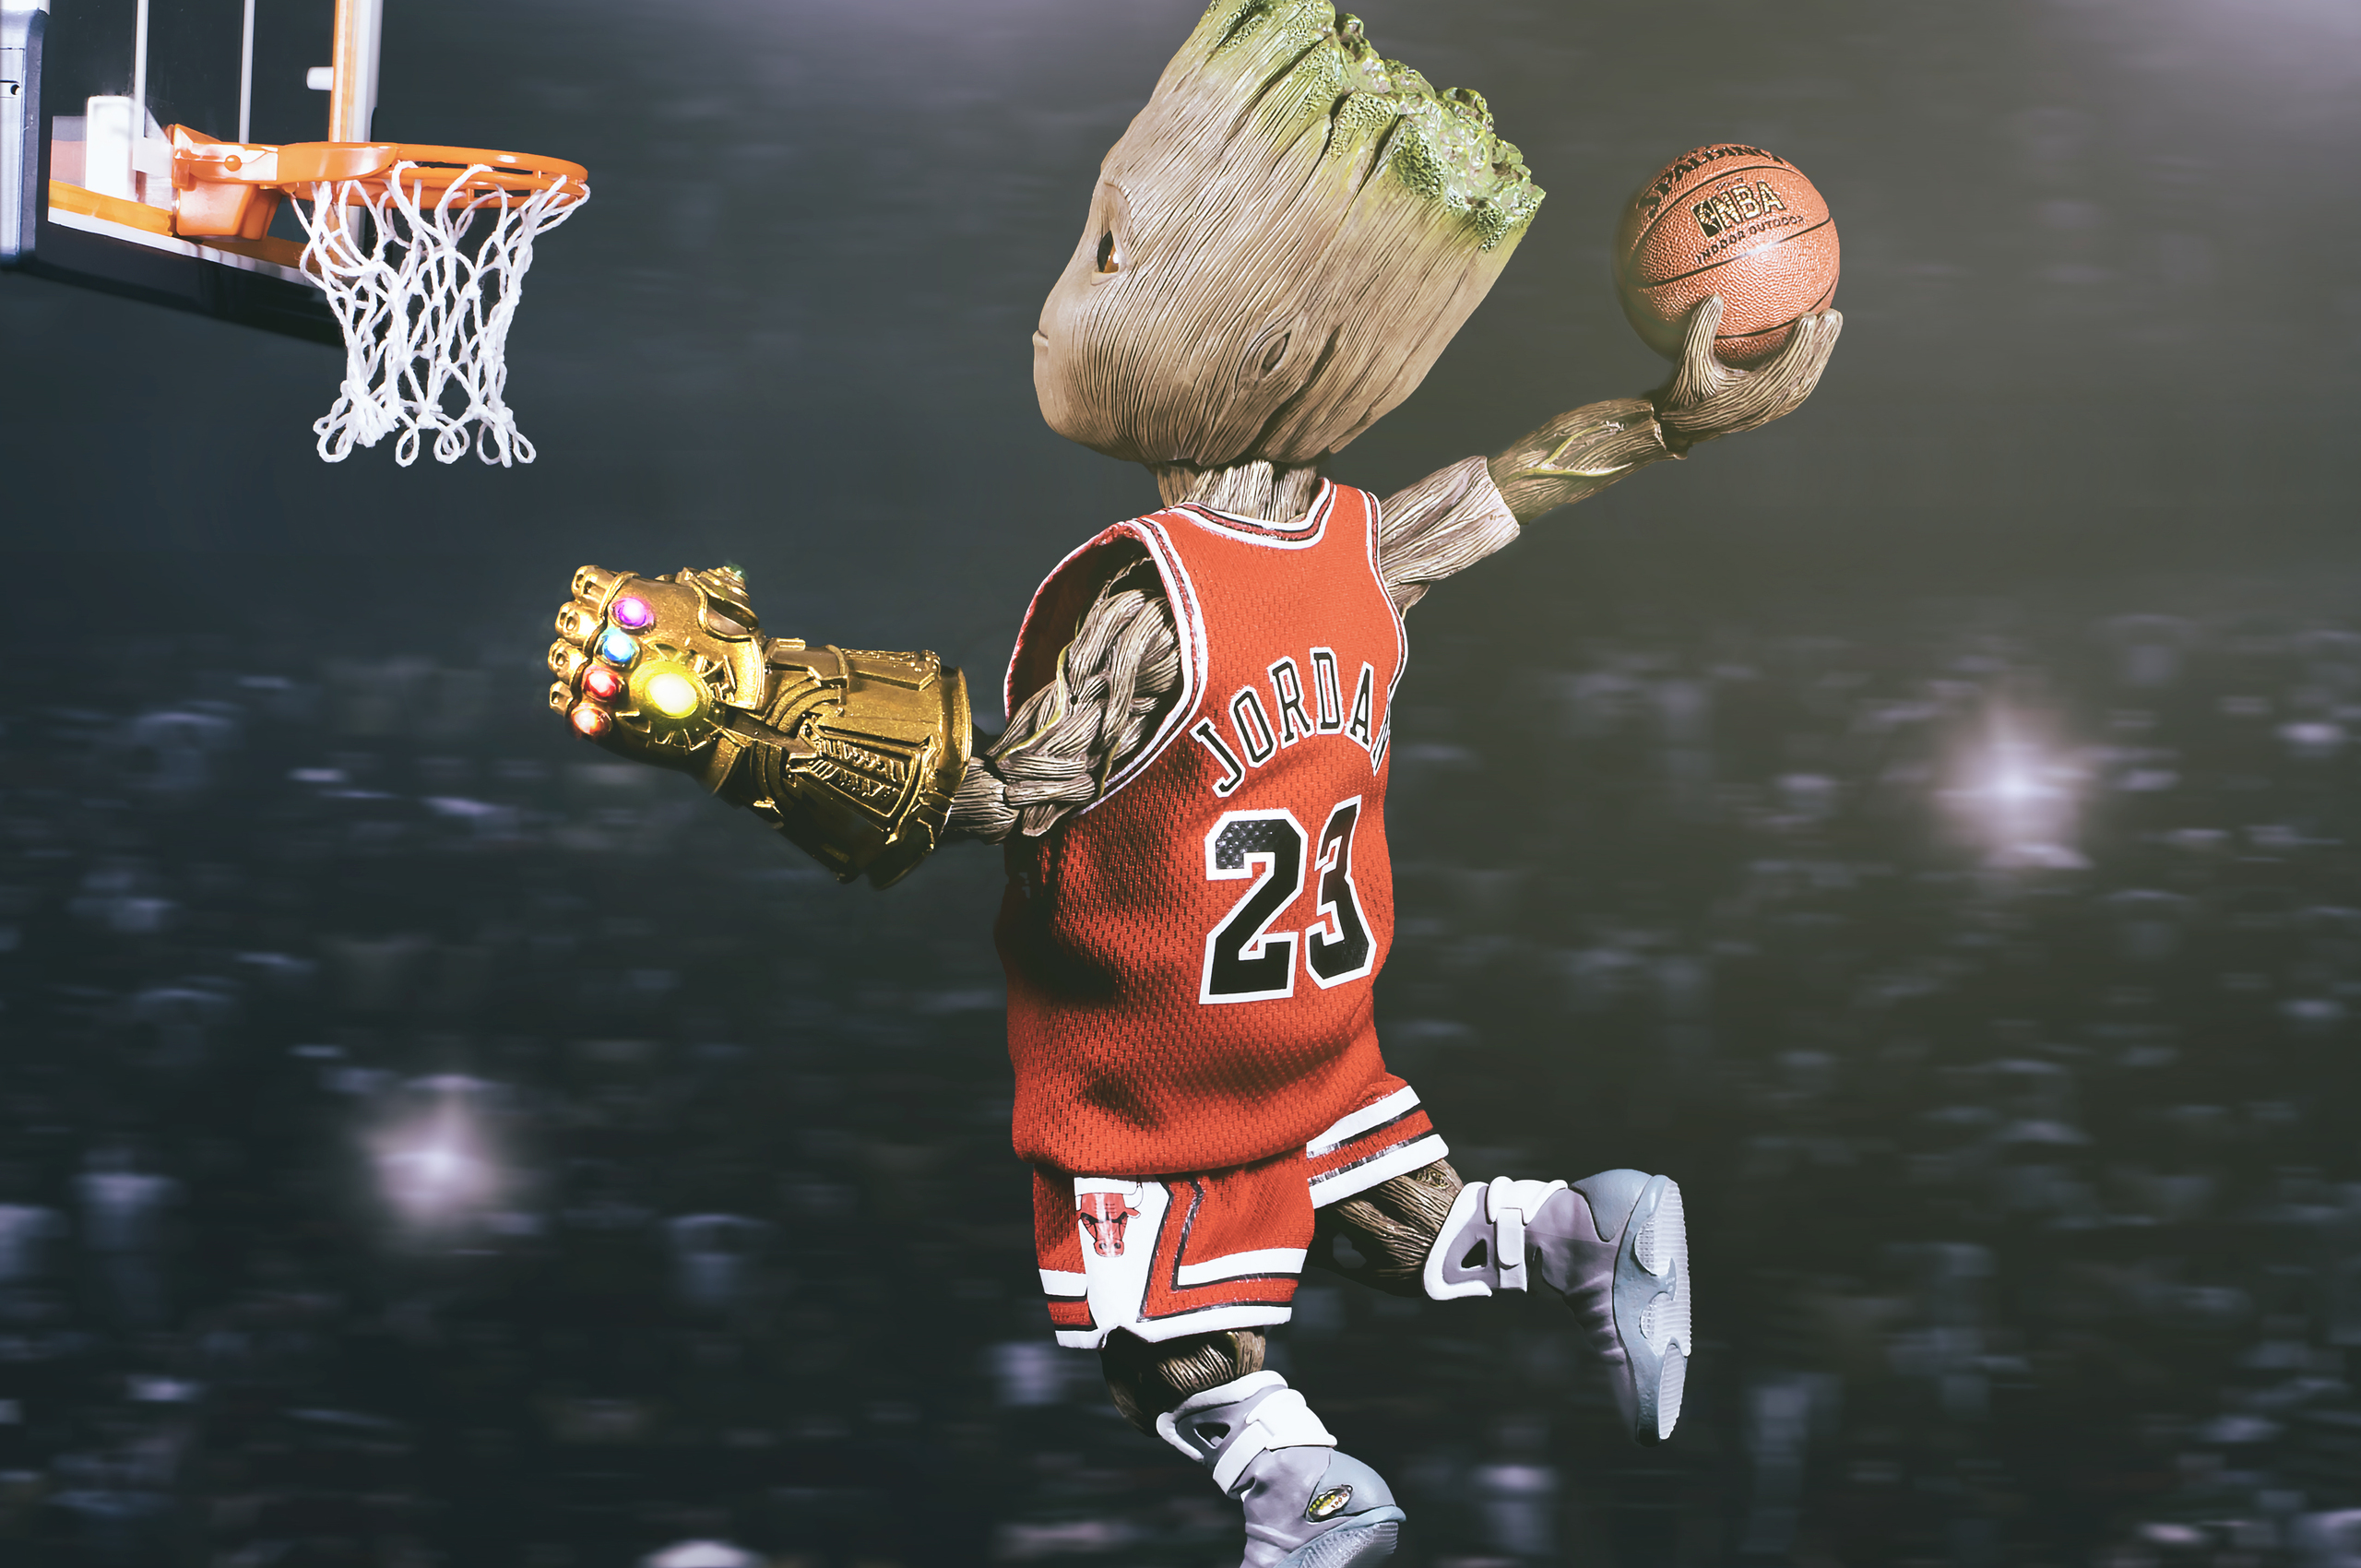 Basketball Cool Sport Wallpaper